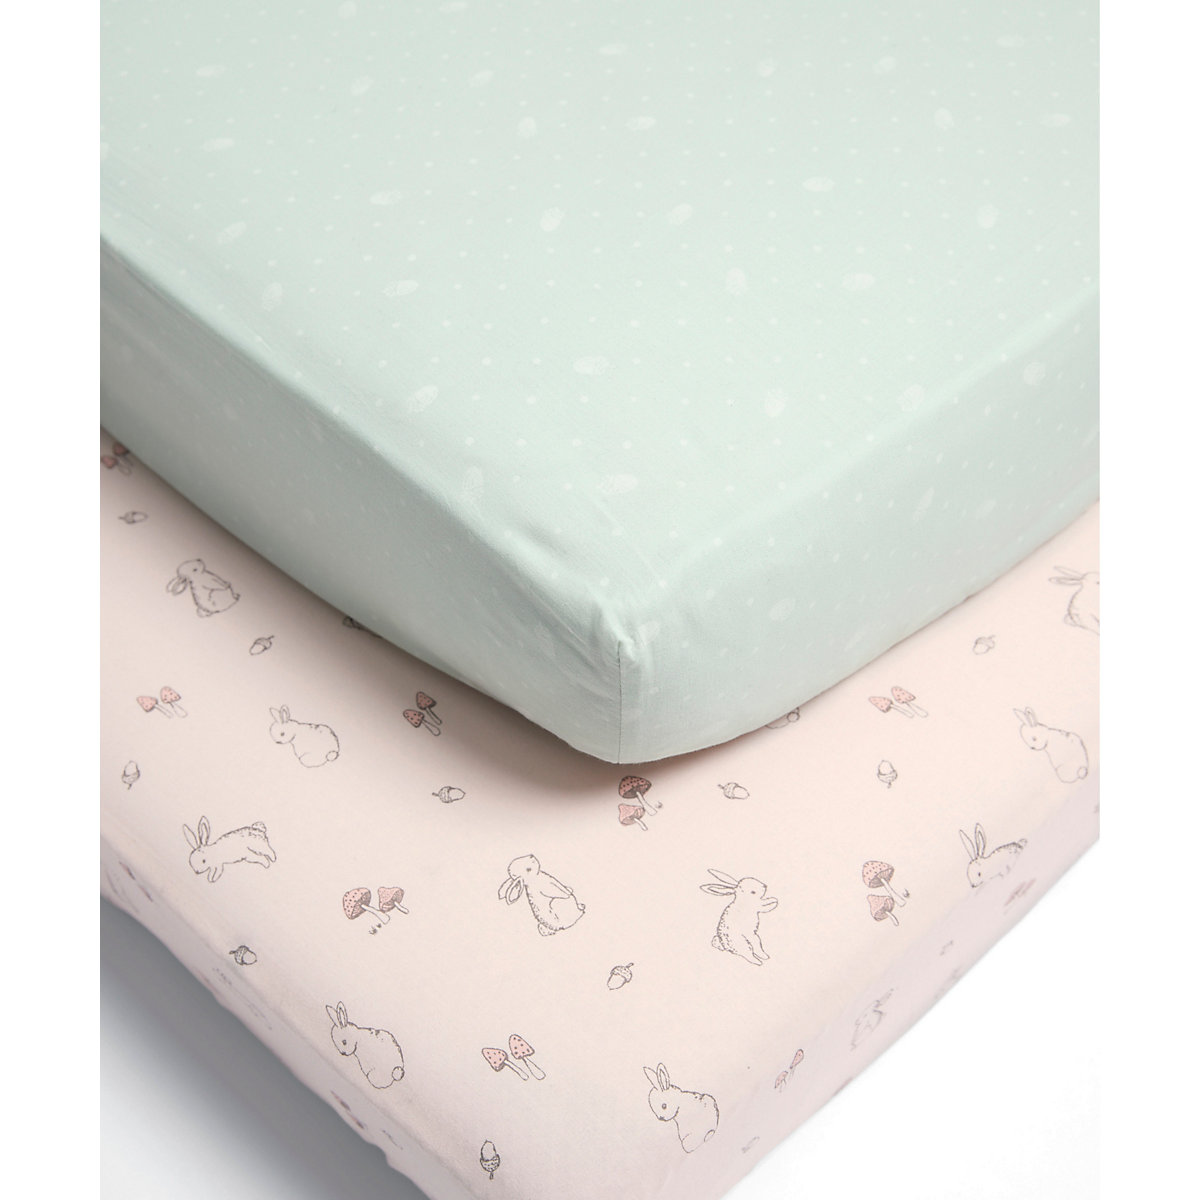 Mamas & Papas lilybelle cot/cot bed fitted sheets - 2 pack